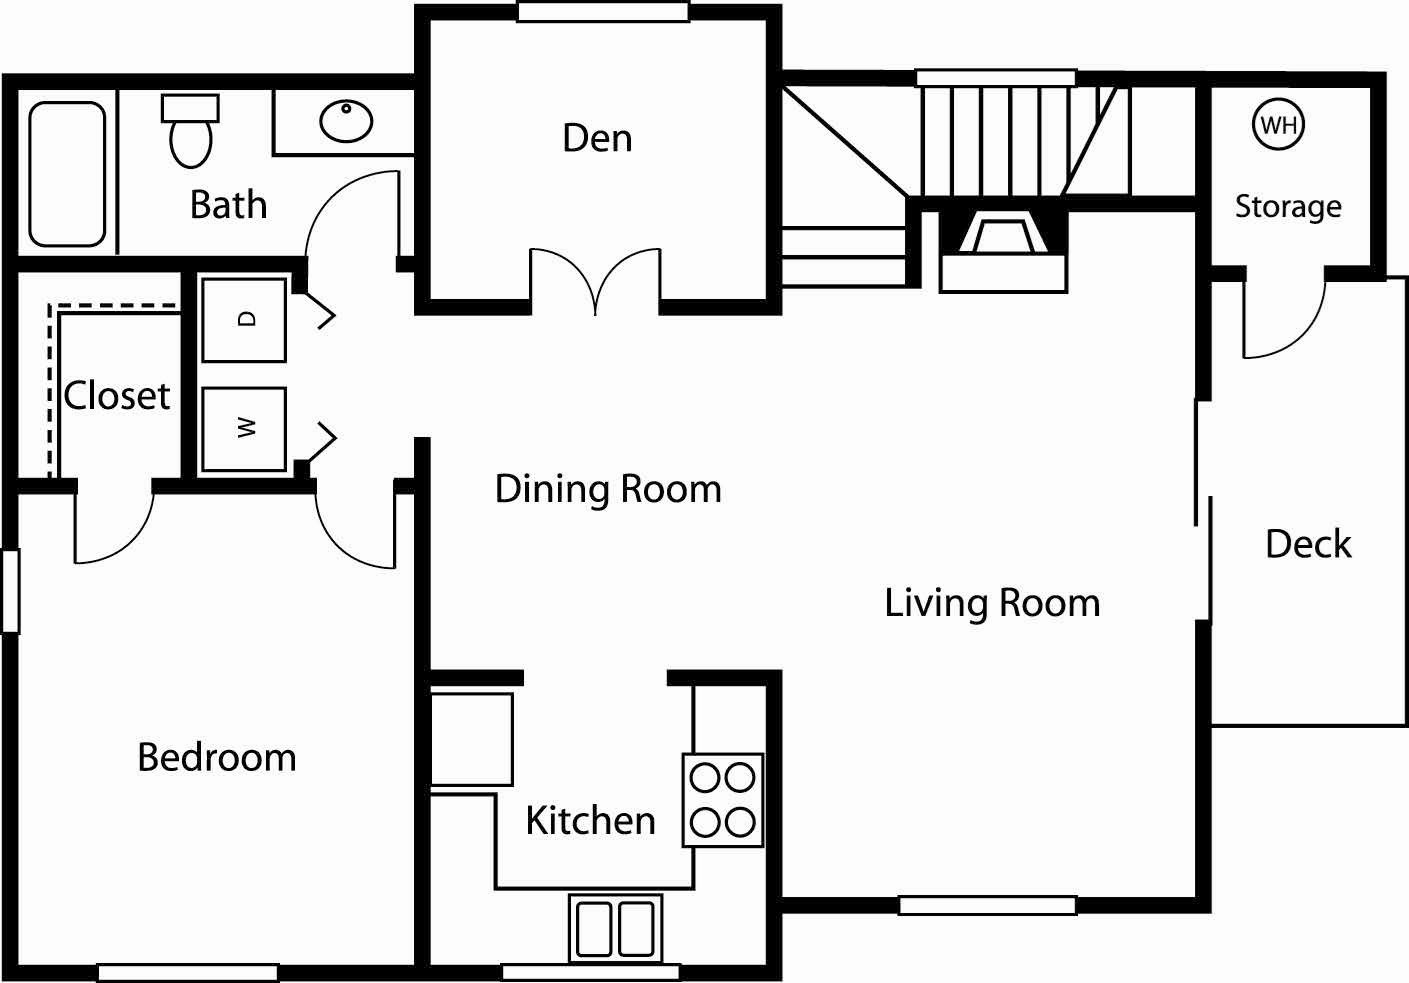 1x1 Den 3 Floor Plan 3